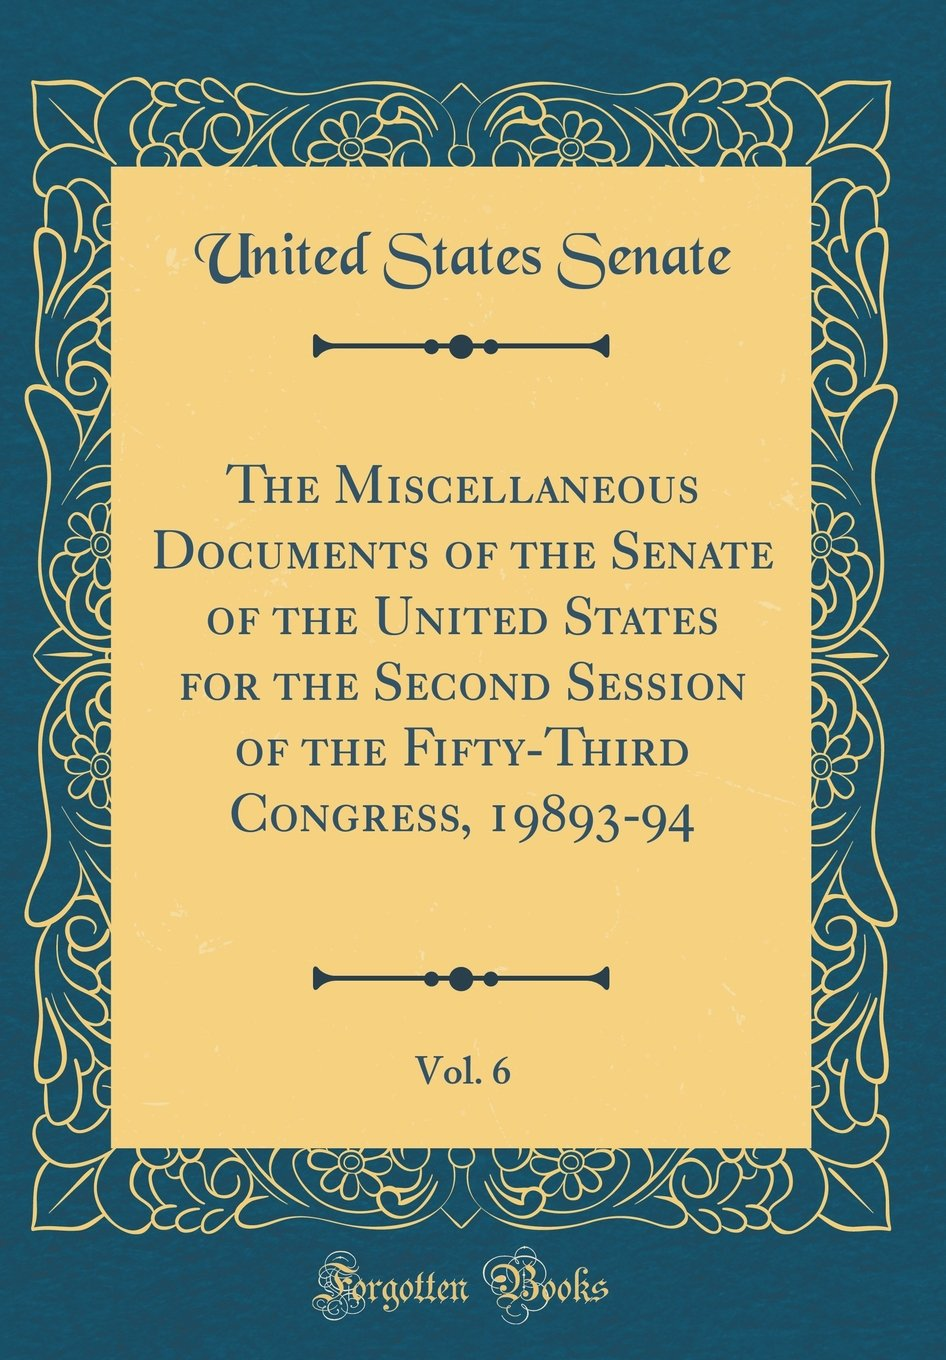 The Miscellaneous Documents of the Senate of the United States for the Second Session of the Fifty-Third Congress, 19893-94, Vol. 6 (Classic Reprint) ebook